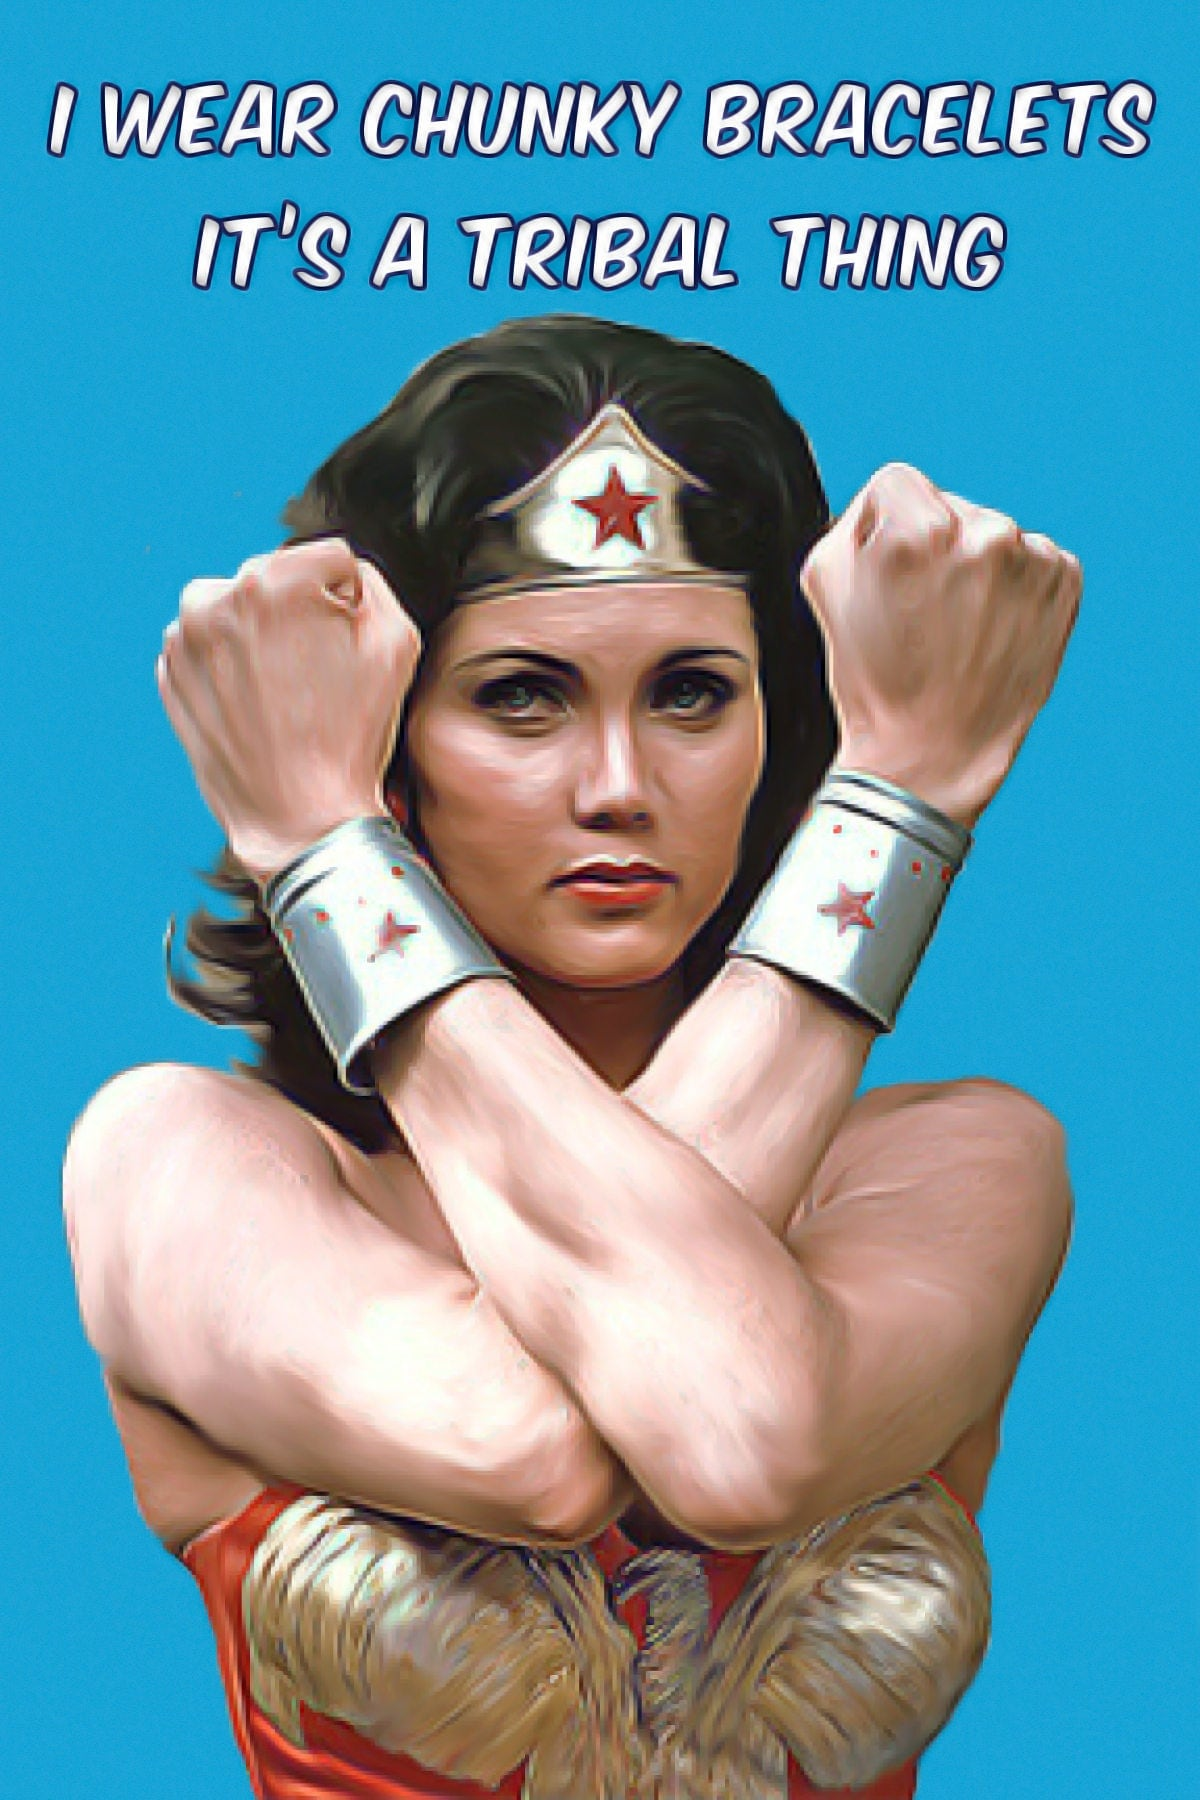 Wonder Woman (1975) - Watch Movies Online For Free